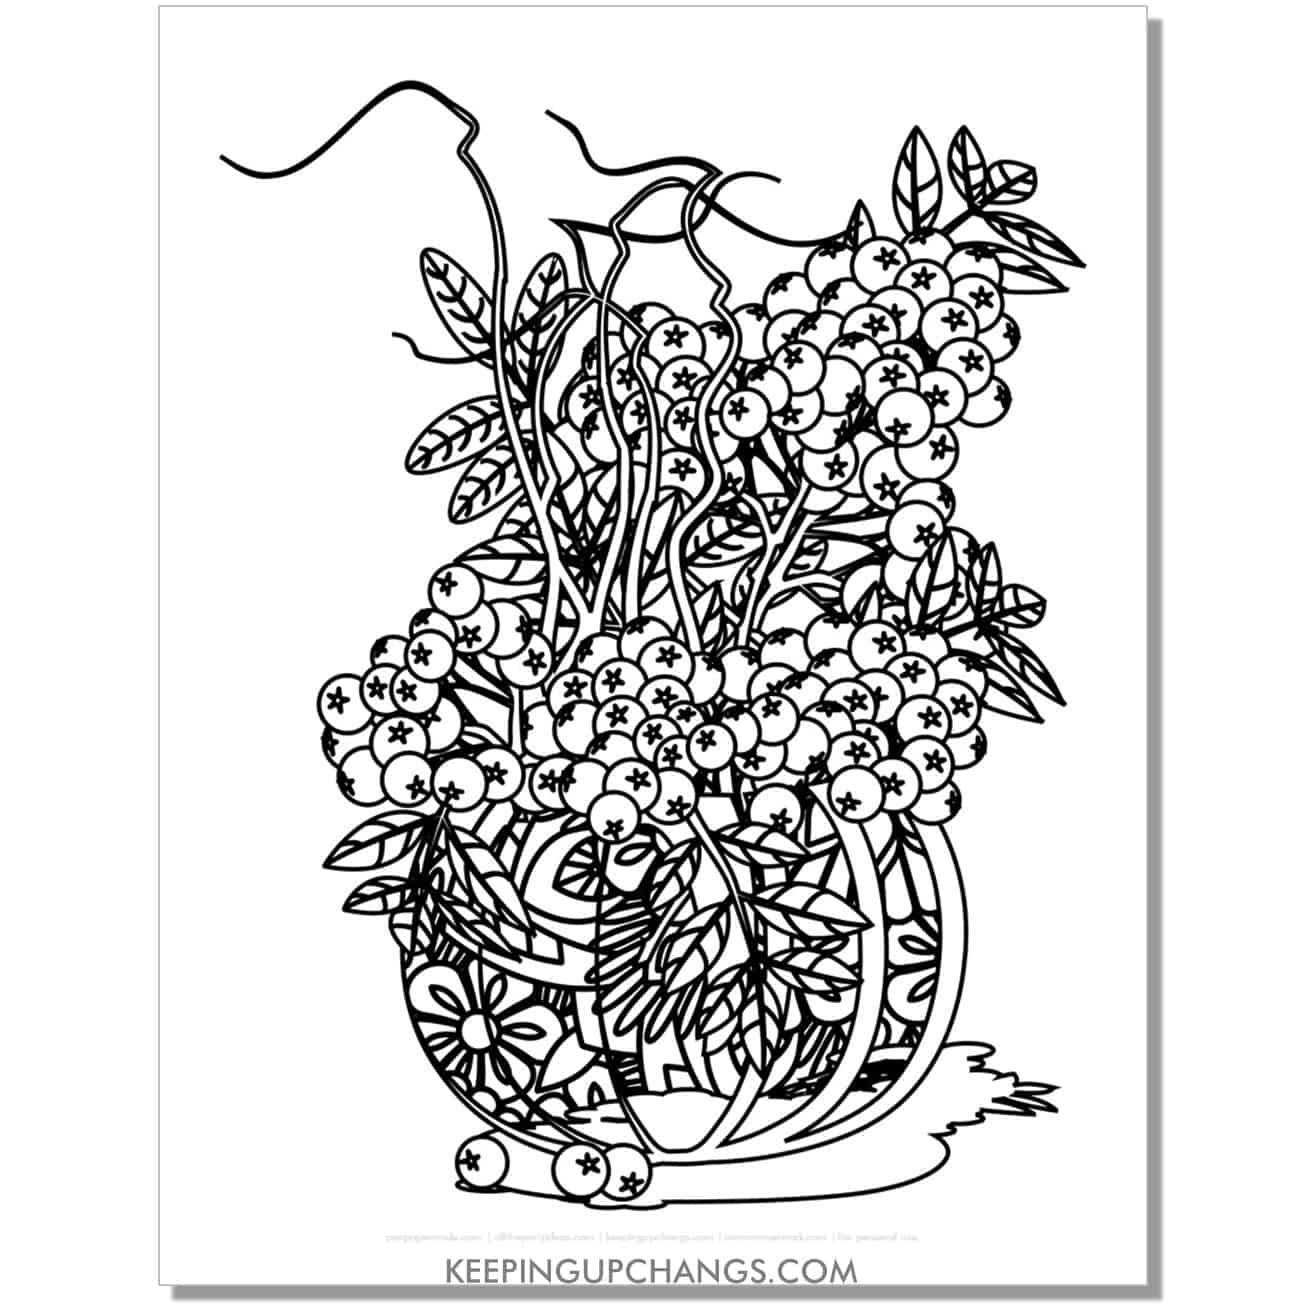 free zentangle fall pumpkin coloring page for adults with berries.